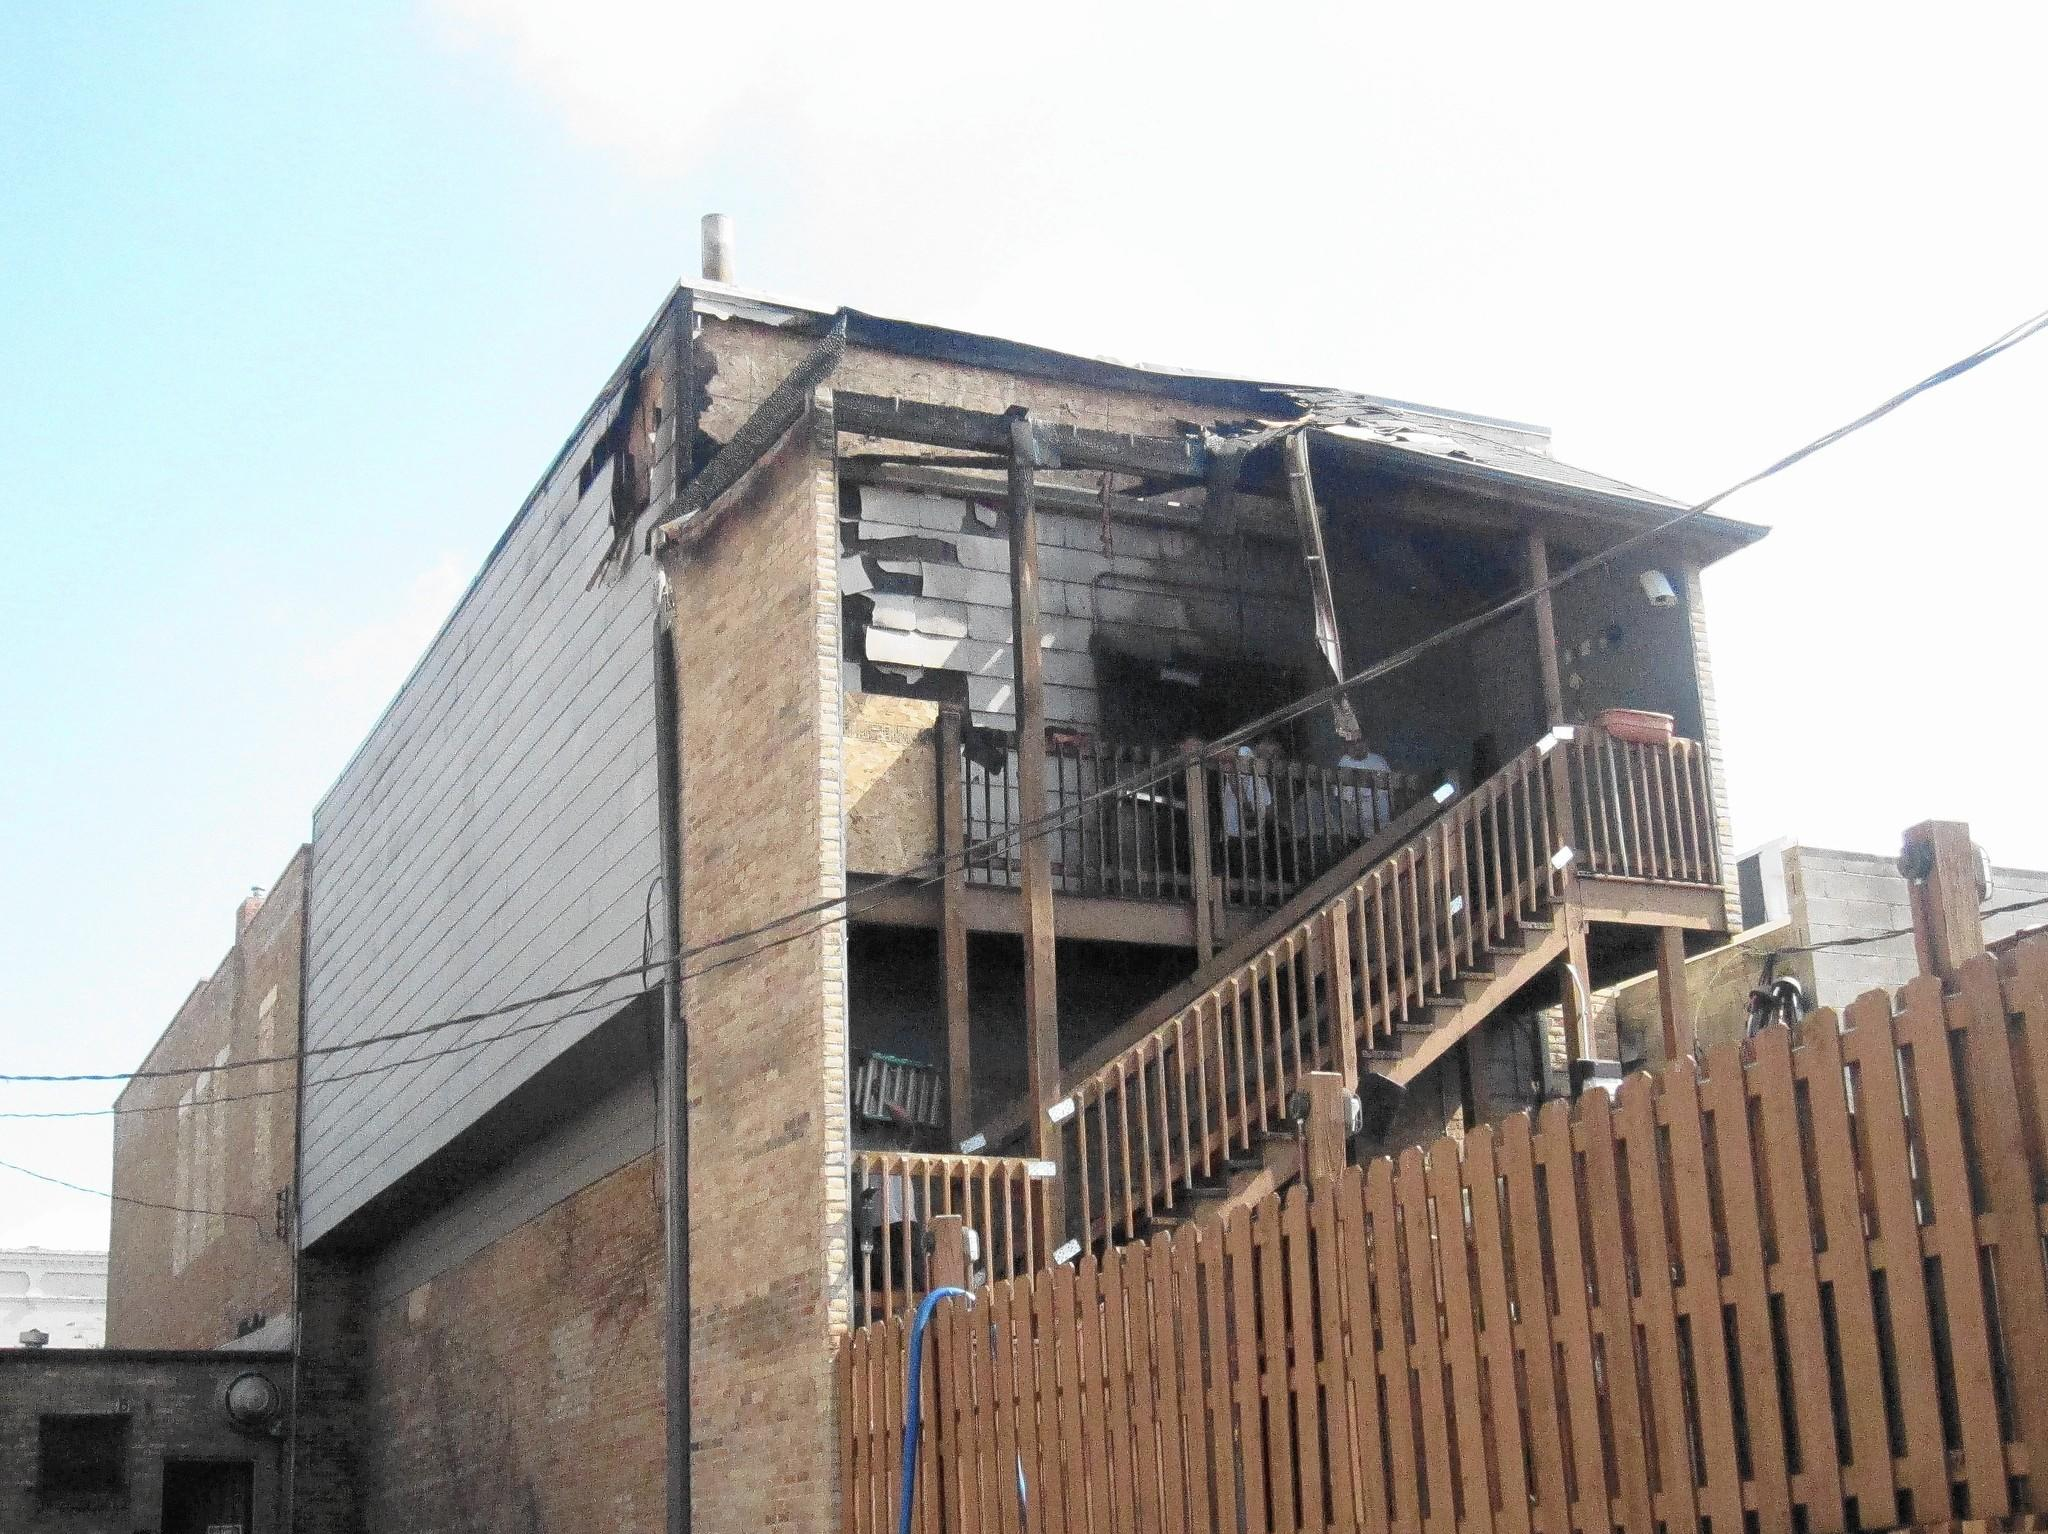 A fire caused $200,000 in damage at Rizzos restaurant in downtown Naperville.